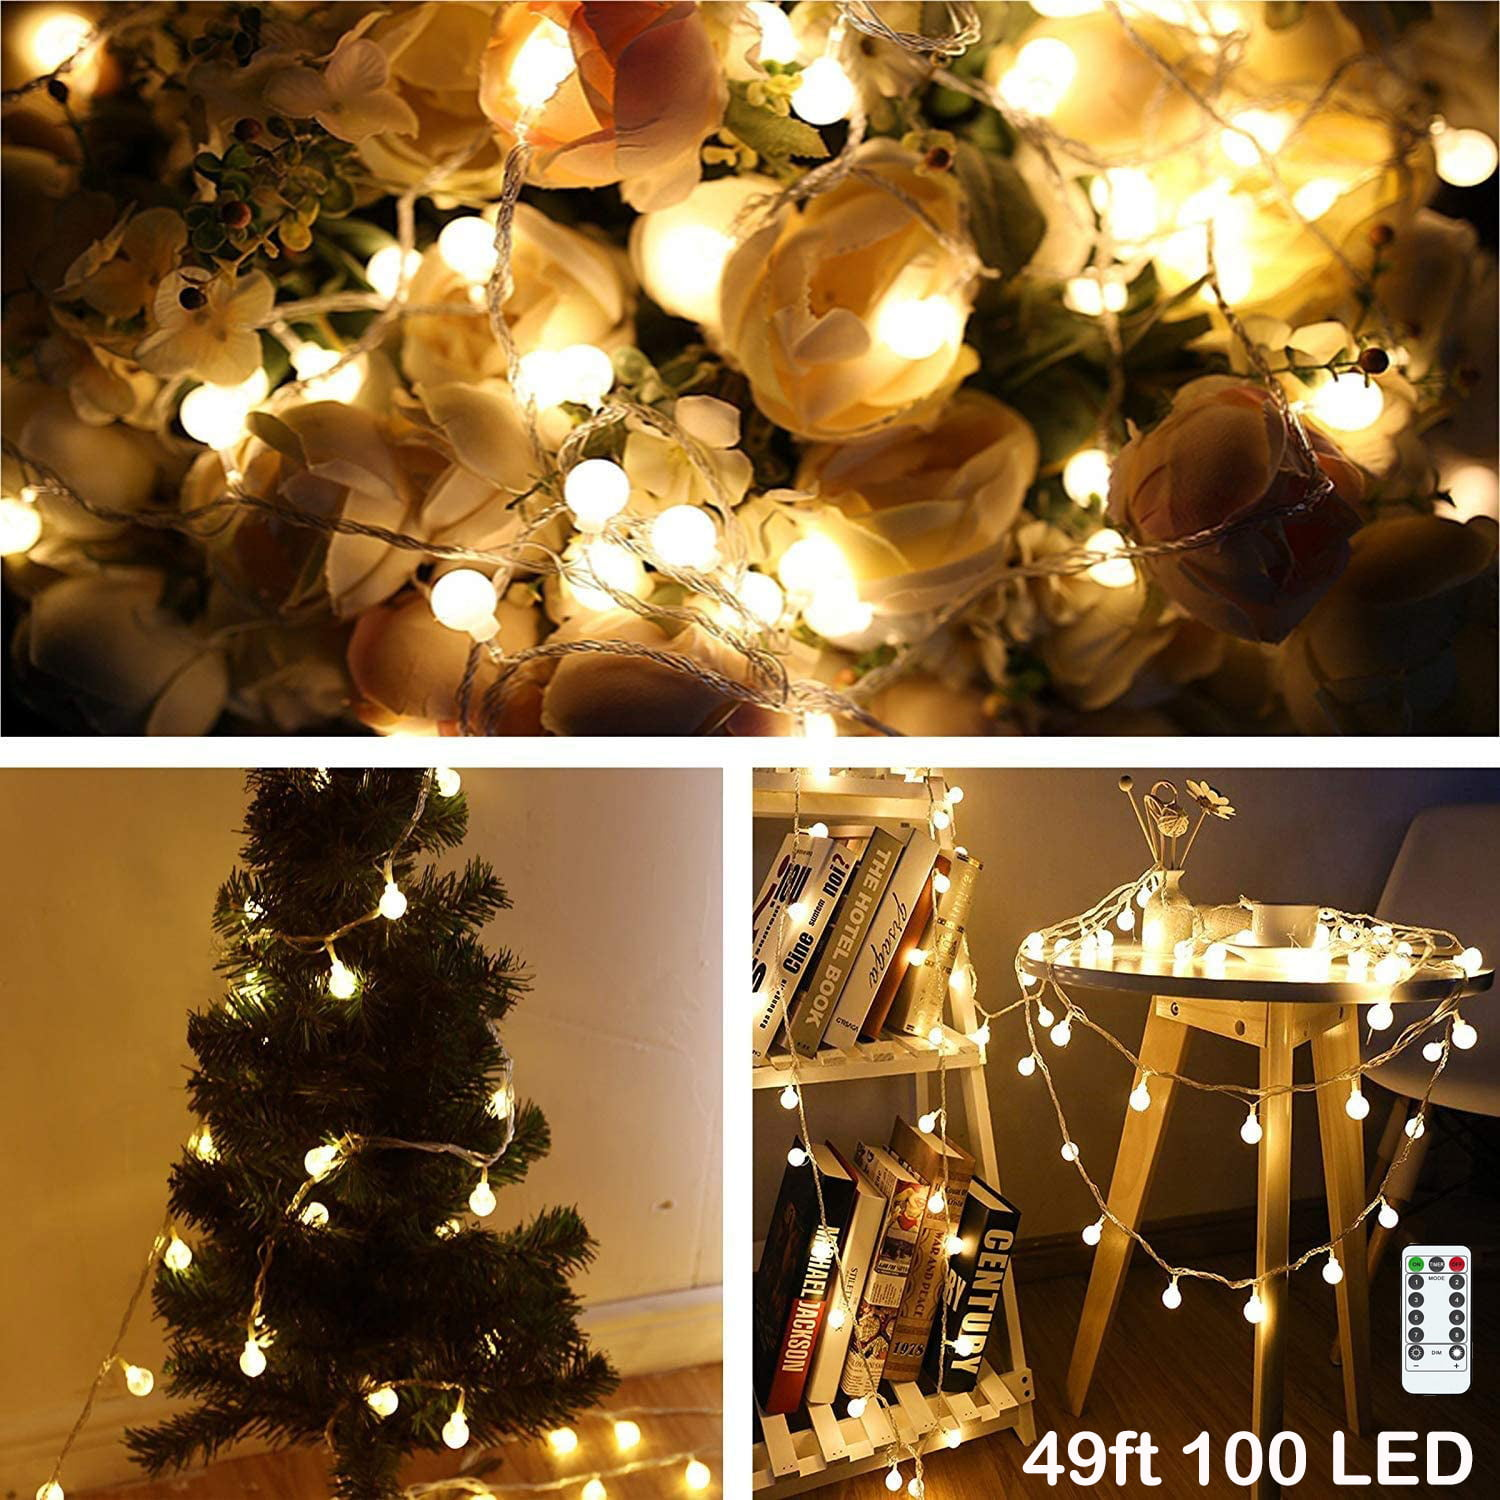 Led String Lights 49ft 100led Ball String Lights Indoor Outdoor Decorative Light With Remote Control Waterproof 8 Modes Starry Fairy String Lights For Bedroom Garden Christmas Tree Wedding I0966 Walmart Com Walmart Com